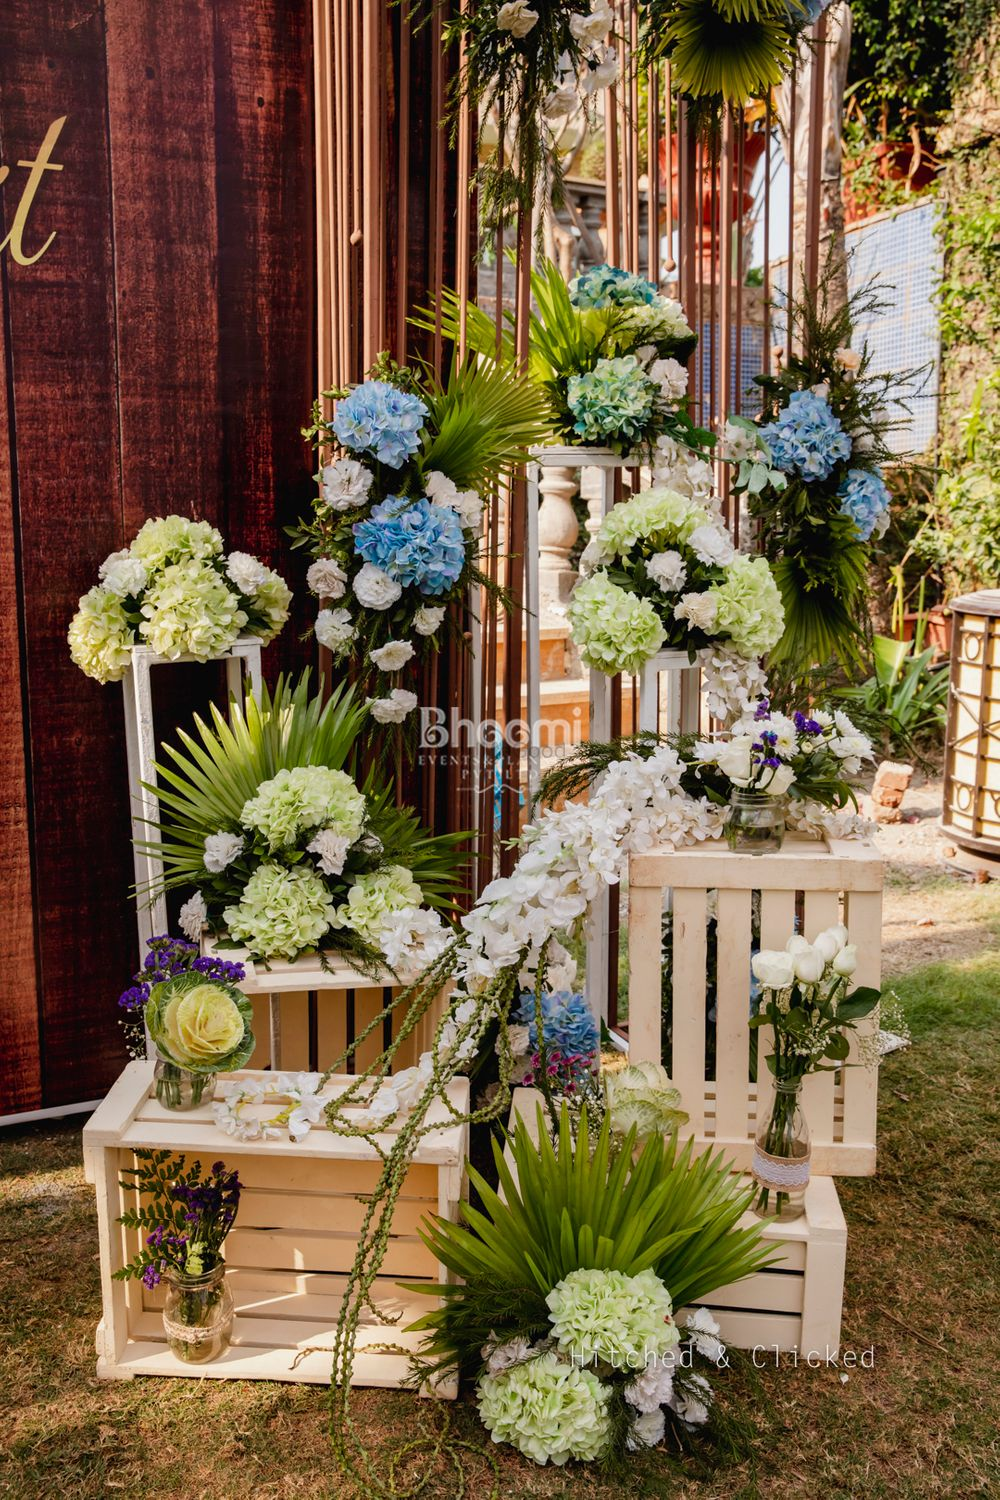 Photo From Atit & Rhea - By Bhoomi Events & Planners